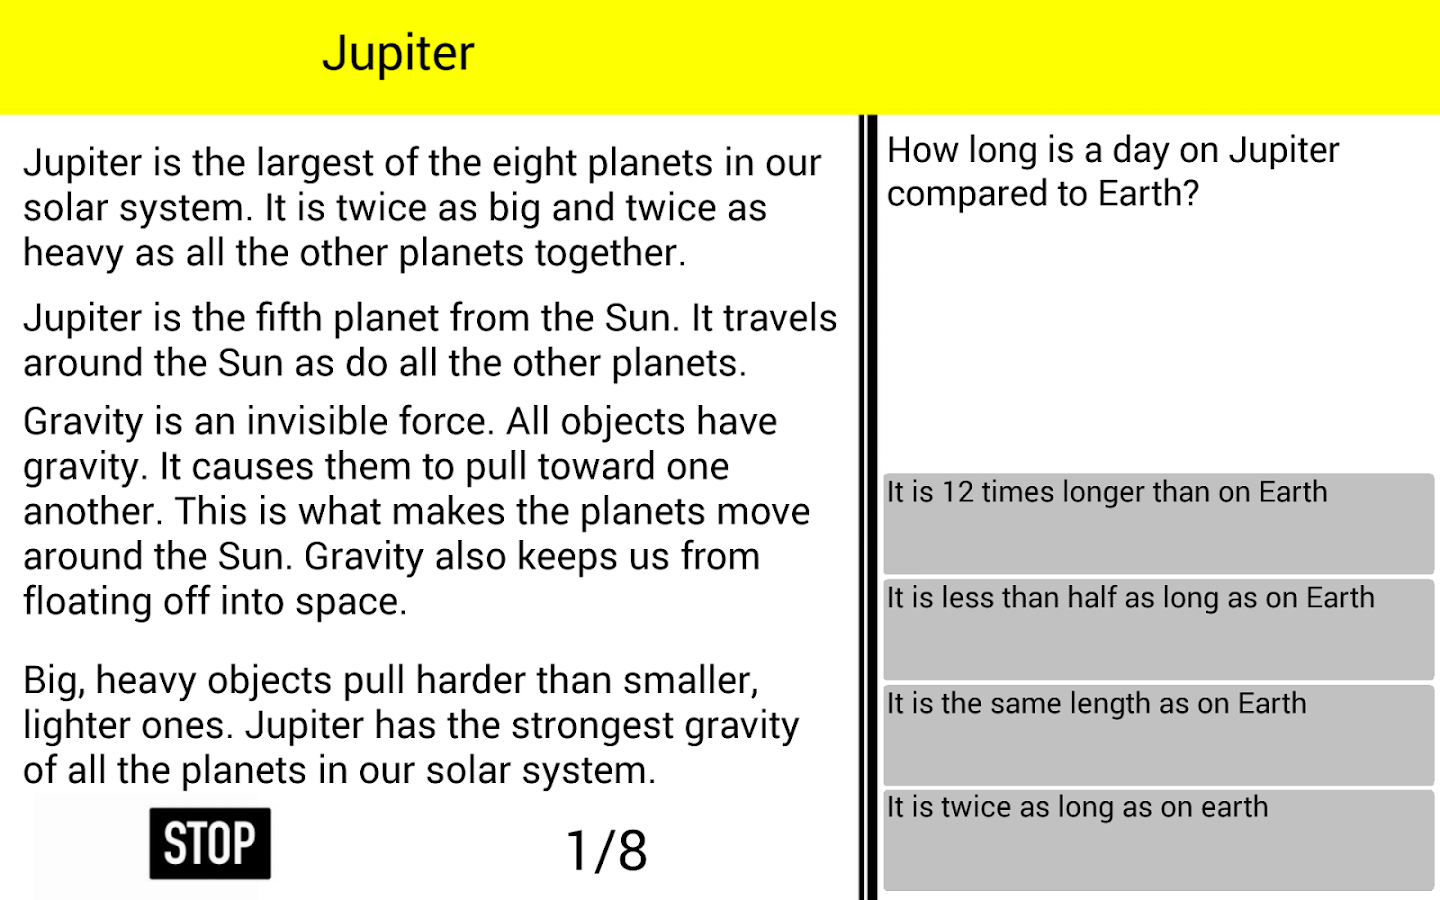 Worksheet Stories For Grade 5 2nd grade non fiction reading android apps on google play screenshot